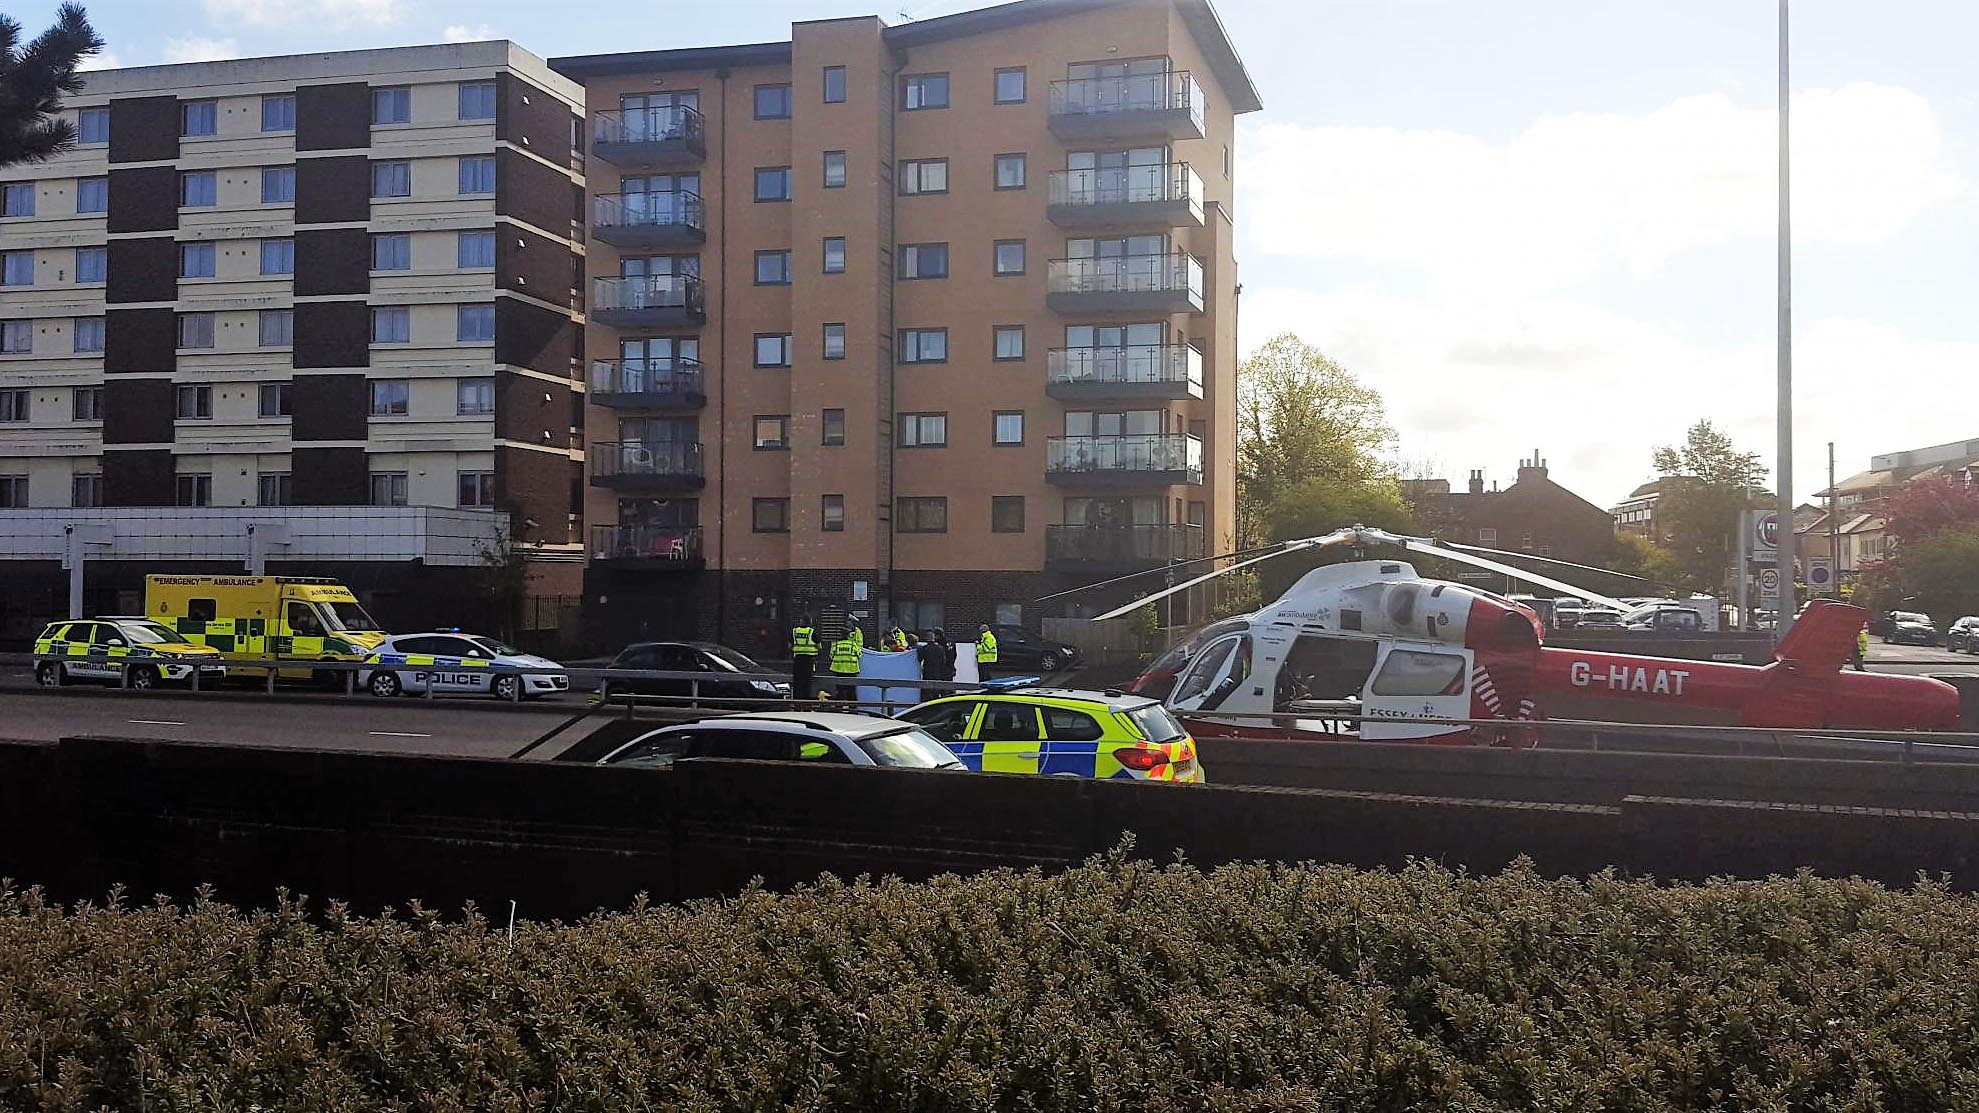 Boy in Hospital with serious head injuries after being Hit By Car in Watford